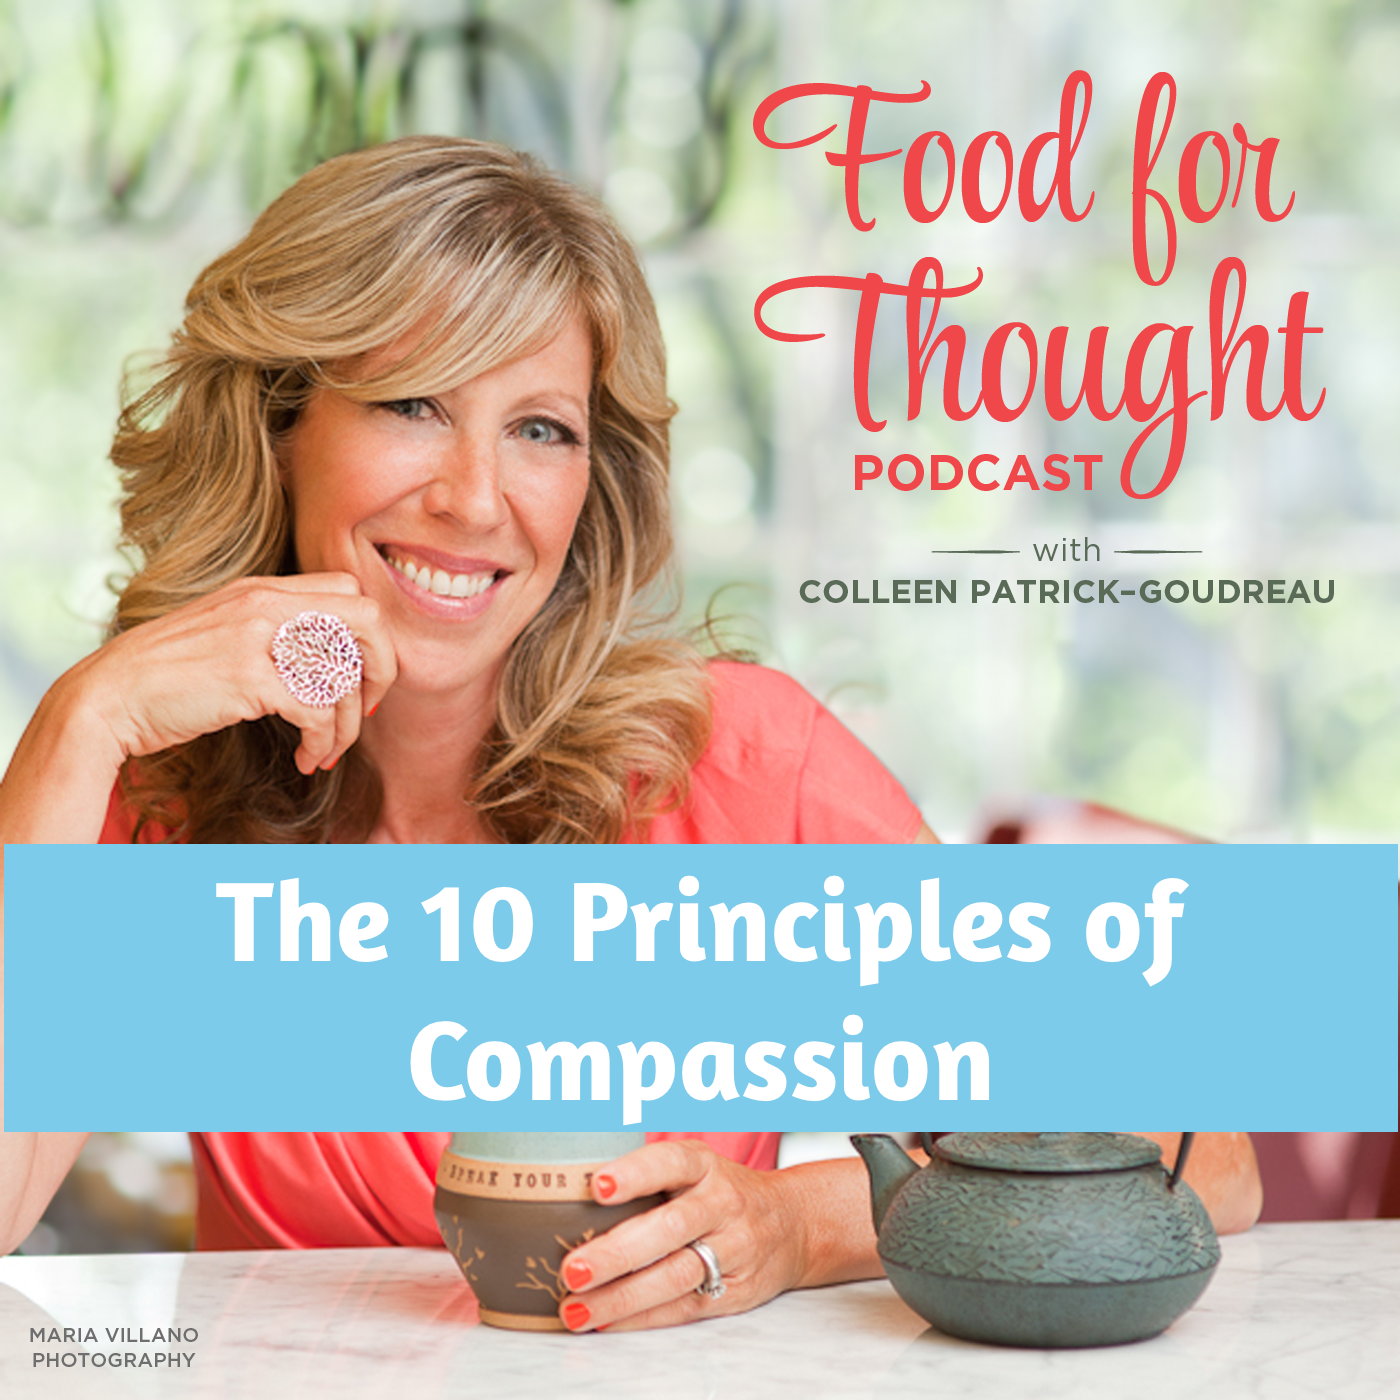 The 10 Principles of Compassion